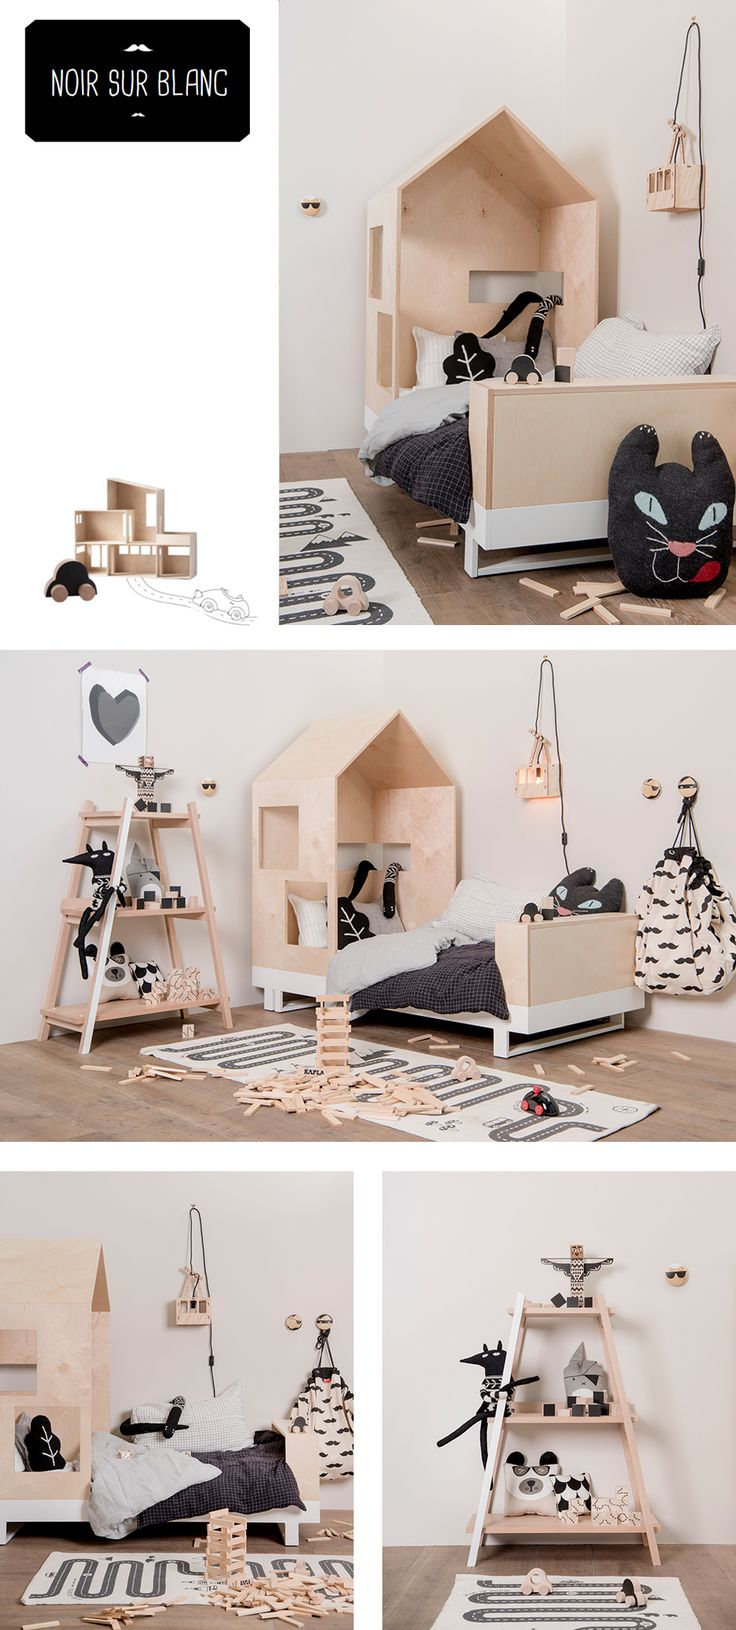 881 best Interior Kids images on Pinterest | Child room, Baby room ...